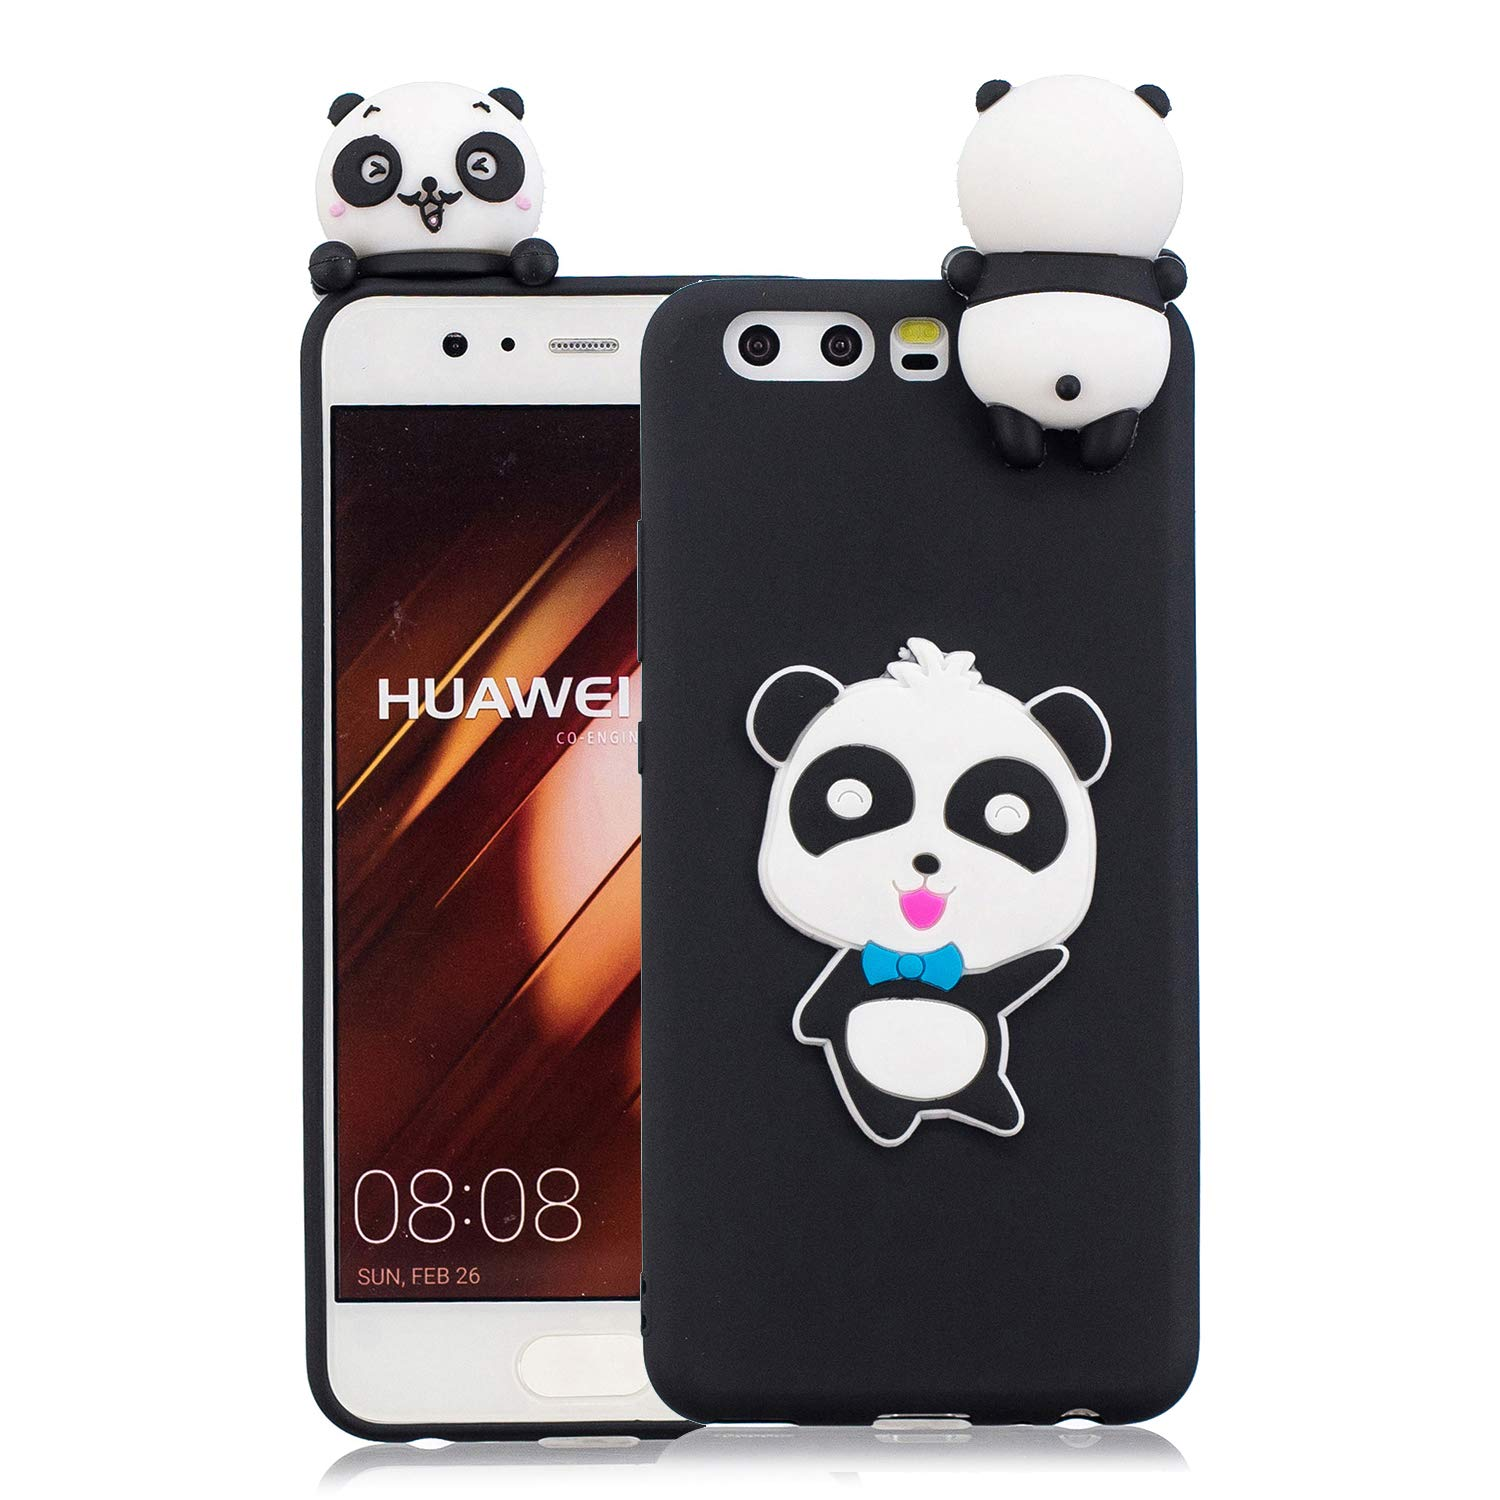 for Huawei P10 Silicone Case with Screen Protector,QFFUN 3D Cartoon [Panda] Pattern Design Soft Flexible Slim Fit Gel Rubber Cover,Shockproof Anti-Scratch Protective Case Bumper